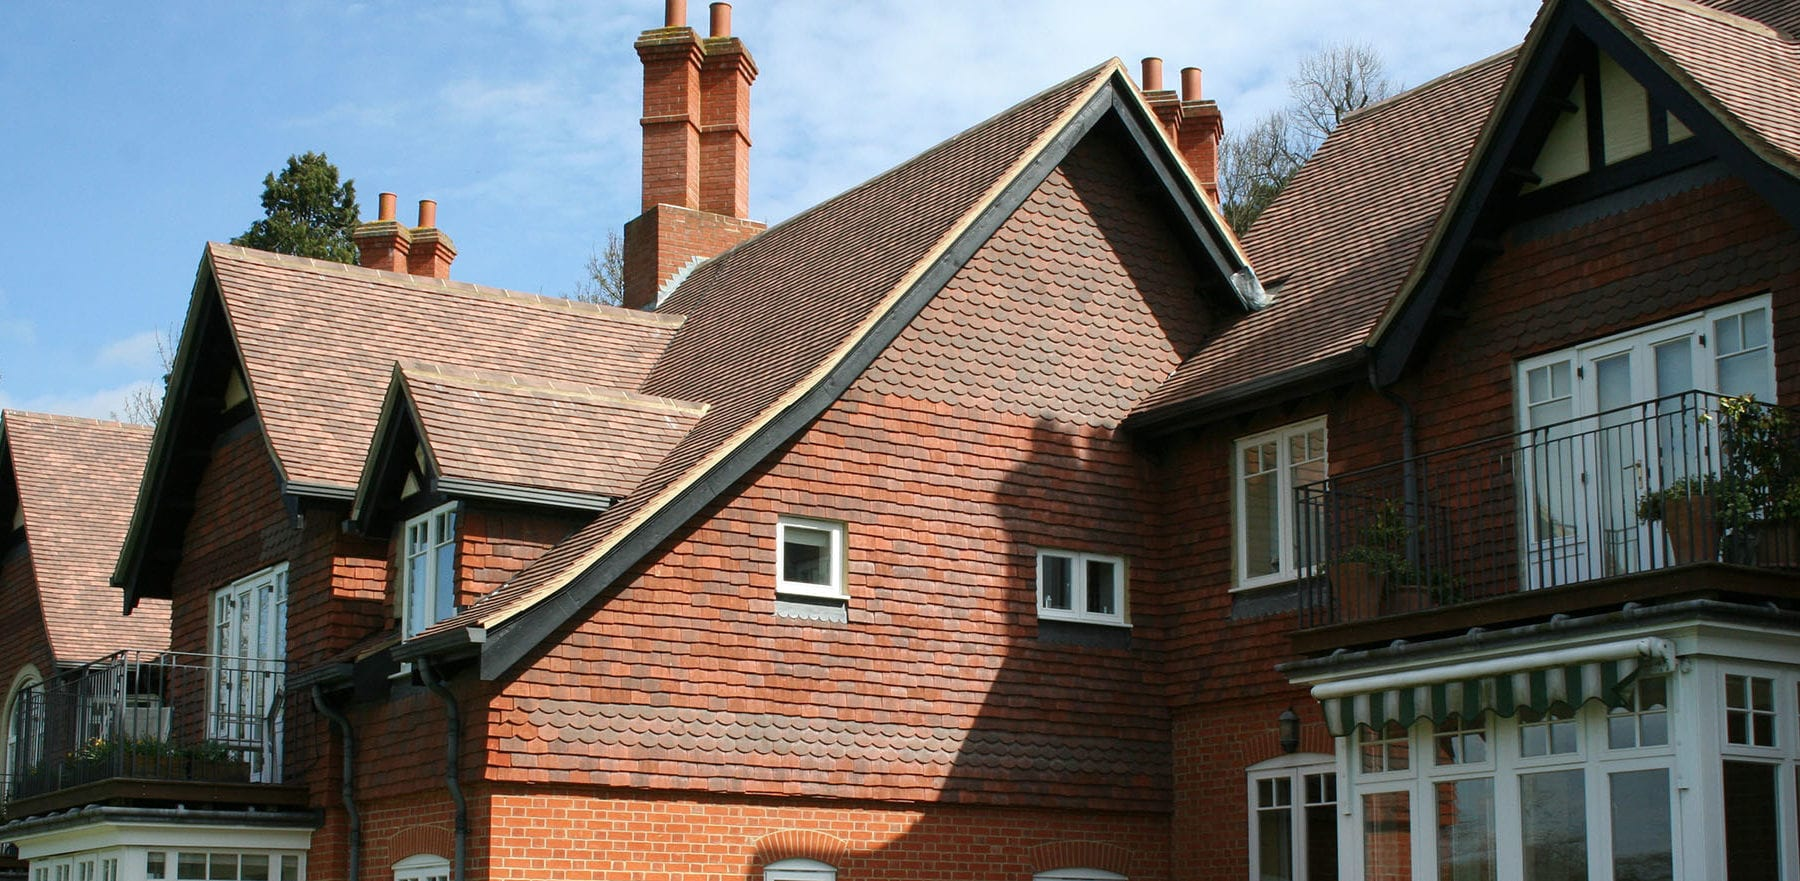 Lifestiles - Machine Made French Collection Roof Tiles - Various, England 5